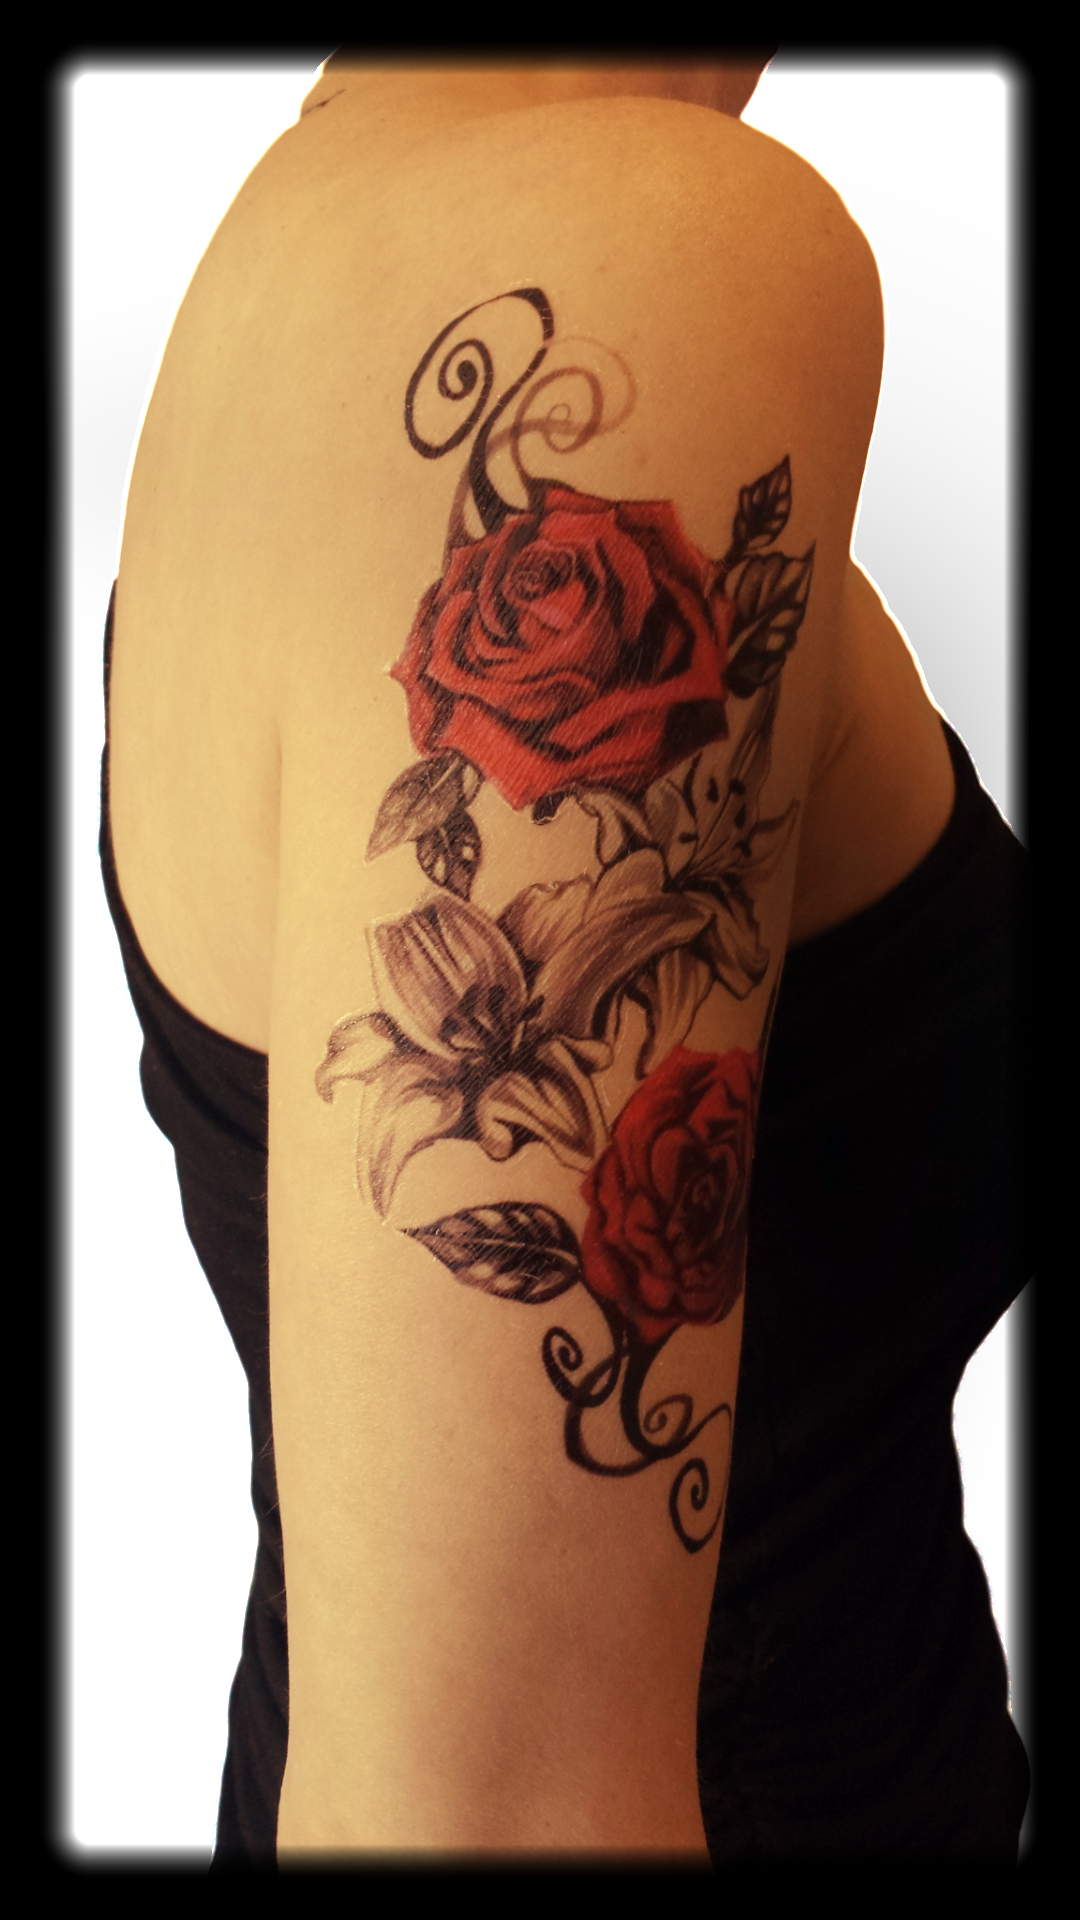 Vintage Rose Temporary Tattoo Half Sleeve Tattoo Full Sleeve Tattoos Lower Back Tattoos